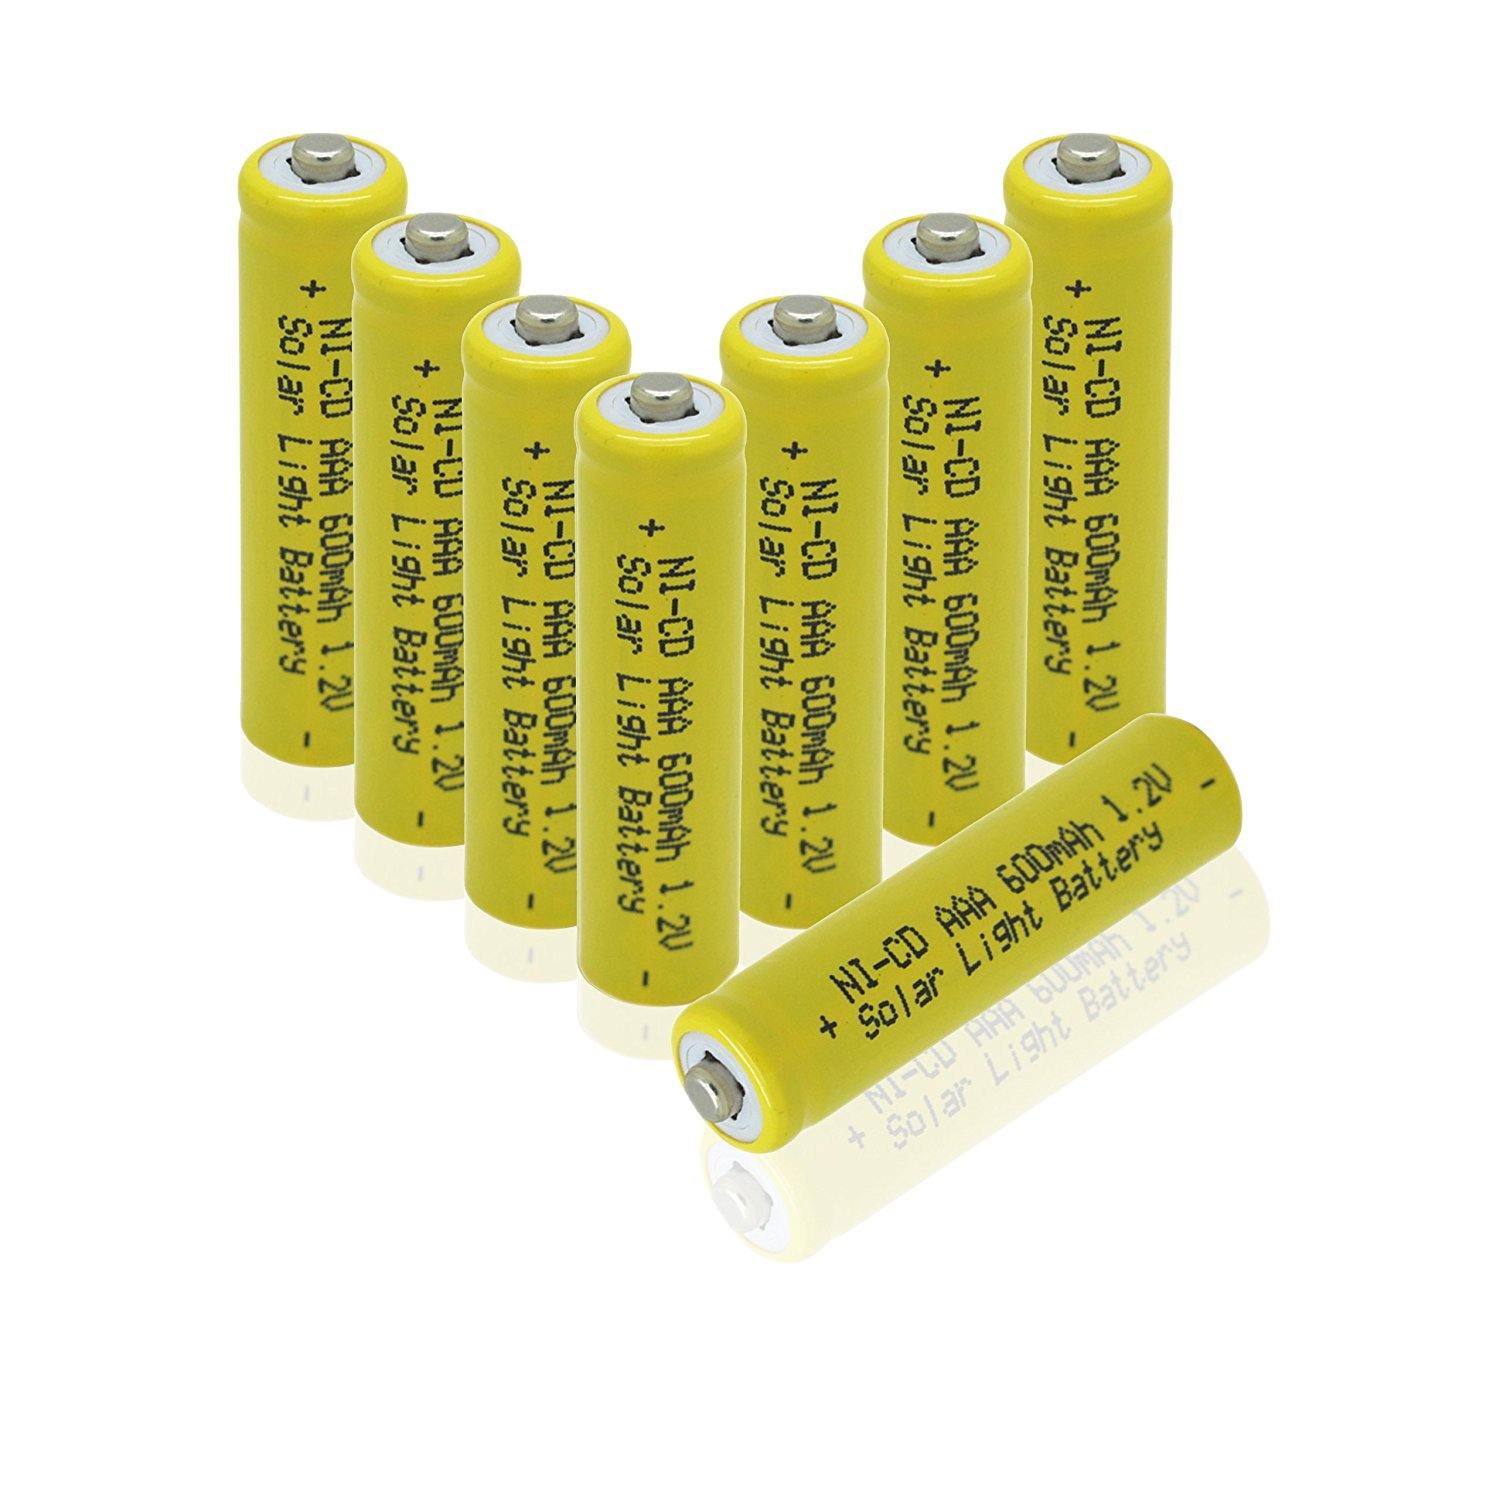 1.2v AAA NiCd 600mAh Rechargeable Battery for Solar light Lamp Yellow Color ( Pack of 8pcs AAA NI-CD Batteries),... by